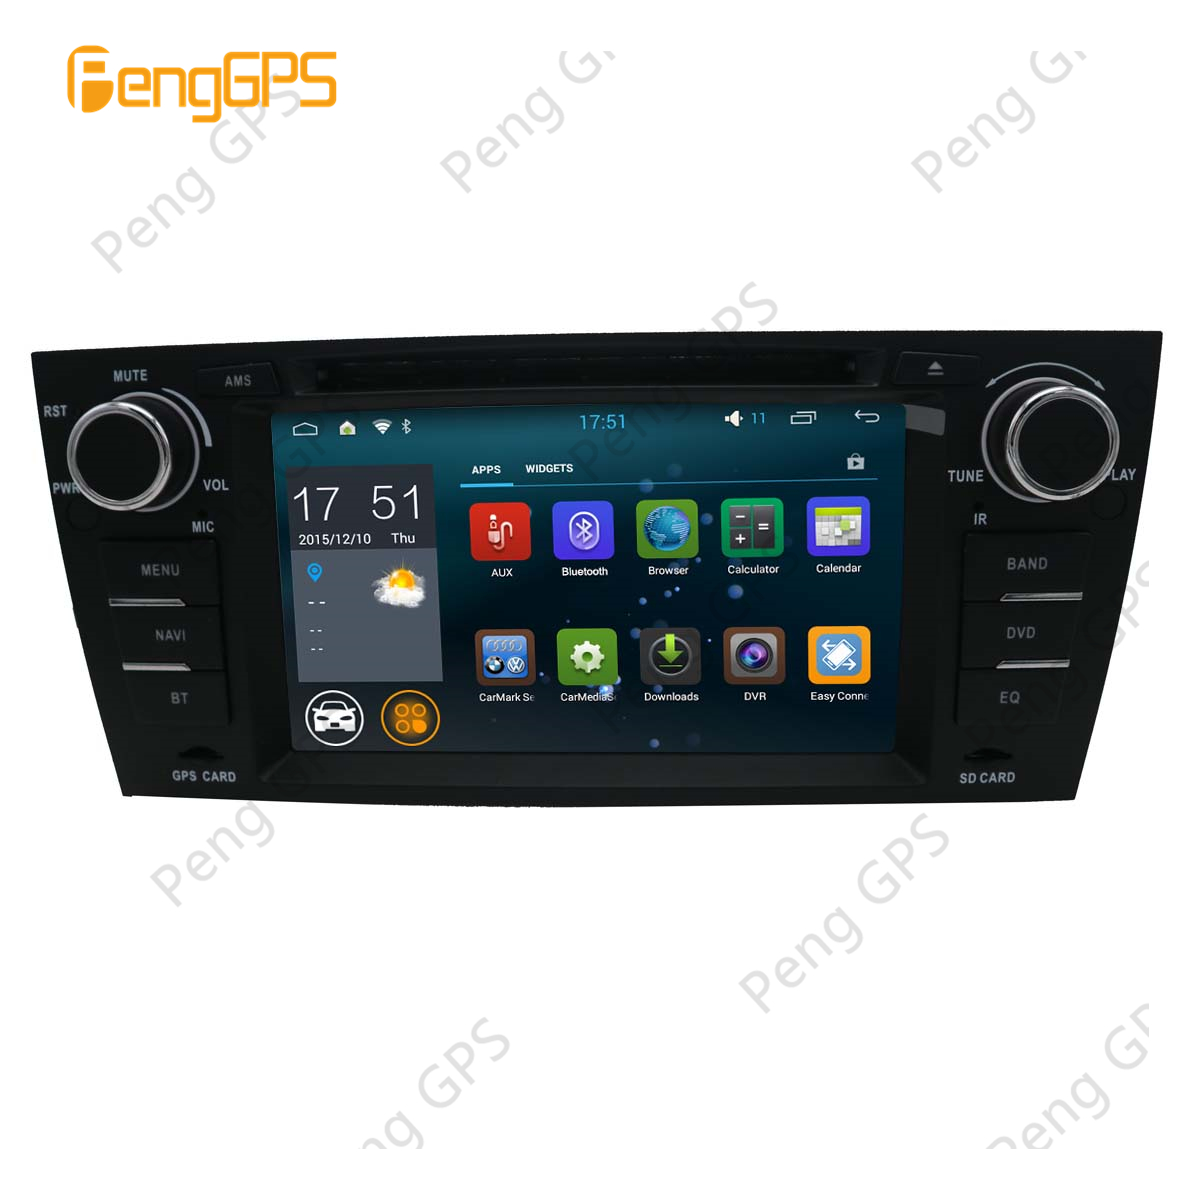 Car CD DVD Player 2 Din Stereo Android Radio for BMW <font><b>E90</b></font> E91 E92 E93 3 Series 2005-2012 <font><b>GPS</b></font> Navigation Headunit WIFI FM image